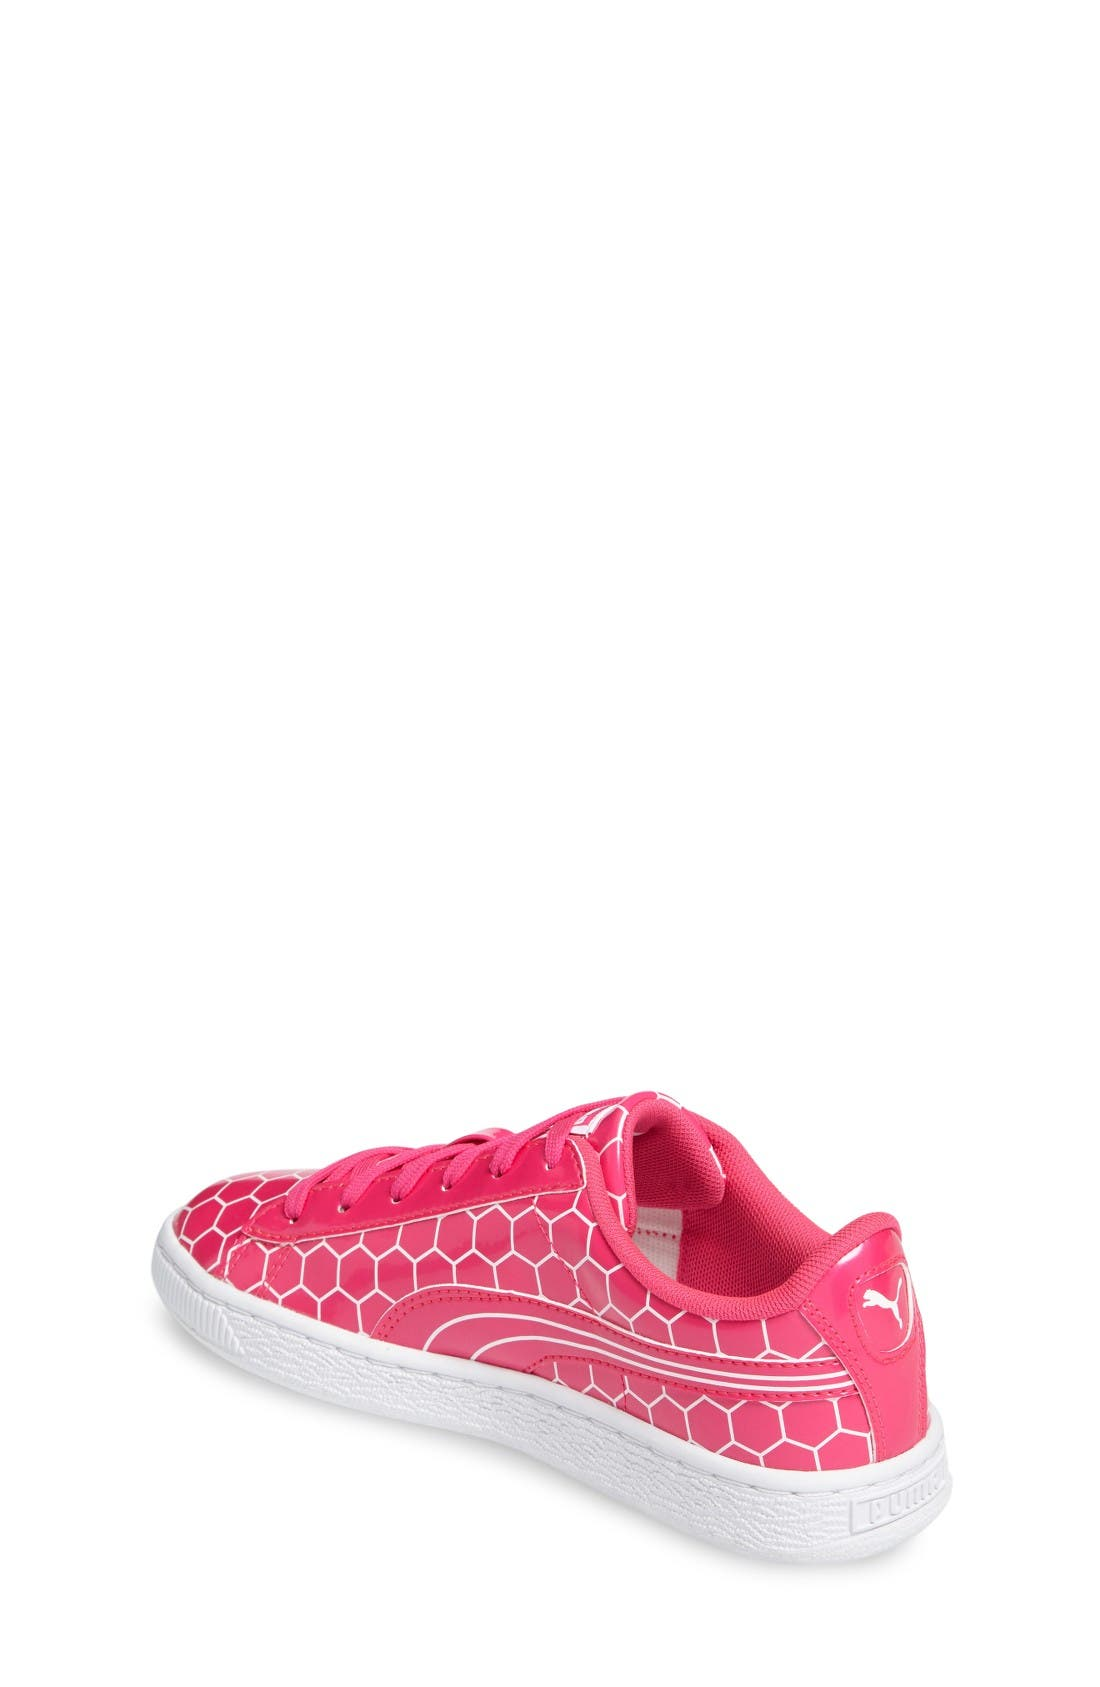 Basket Classic Ano Sneaker,                             Alternate thumbnail 2, color,                             Pink Glo-Puma White